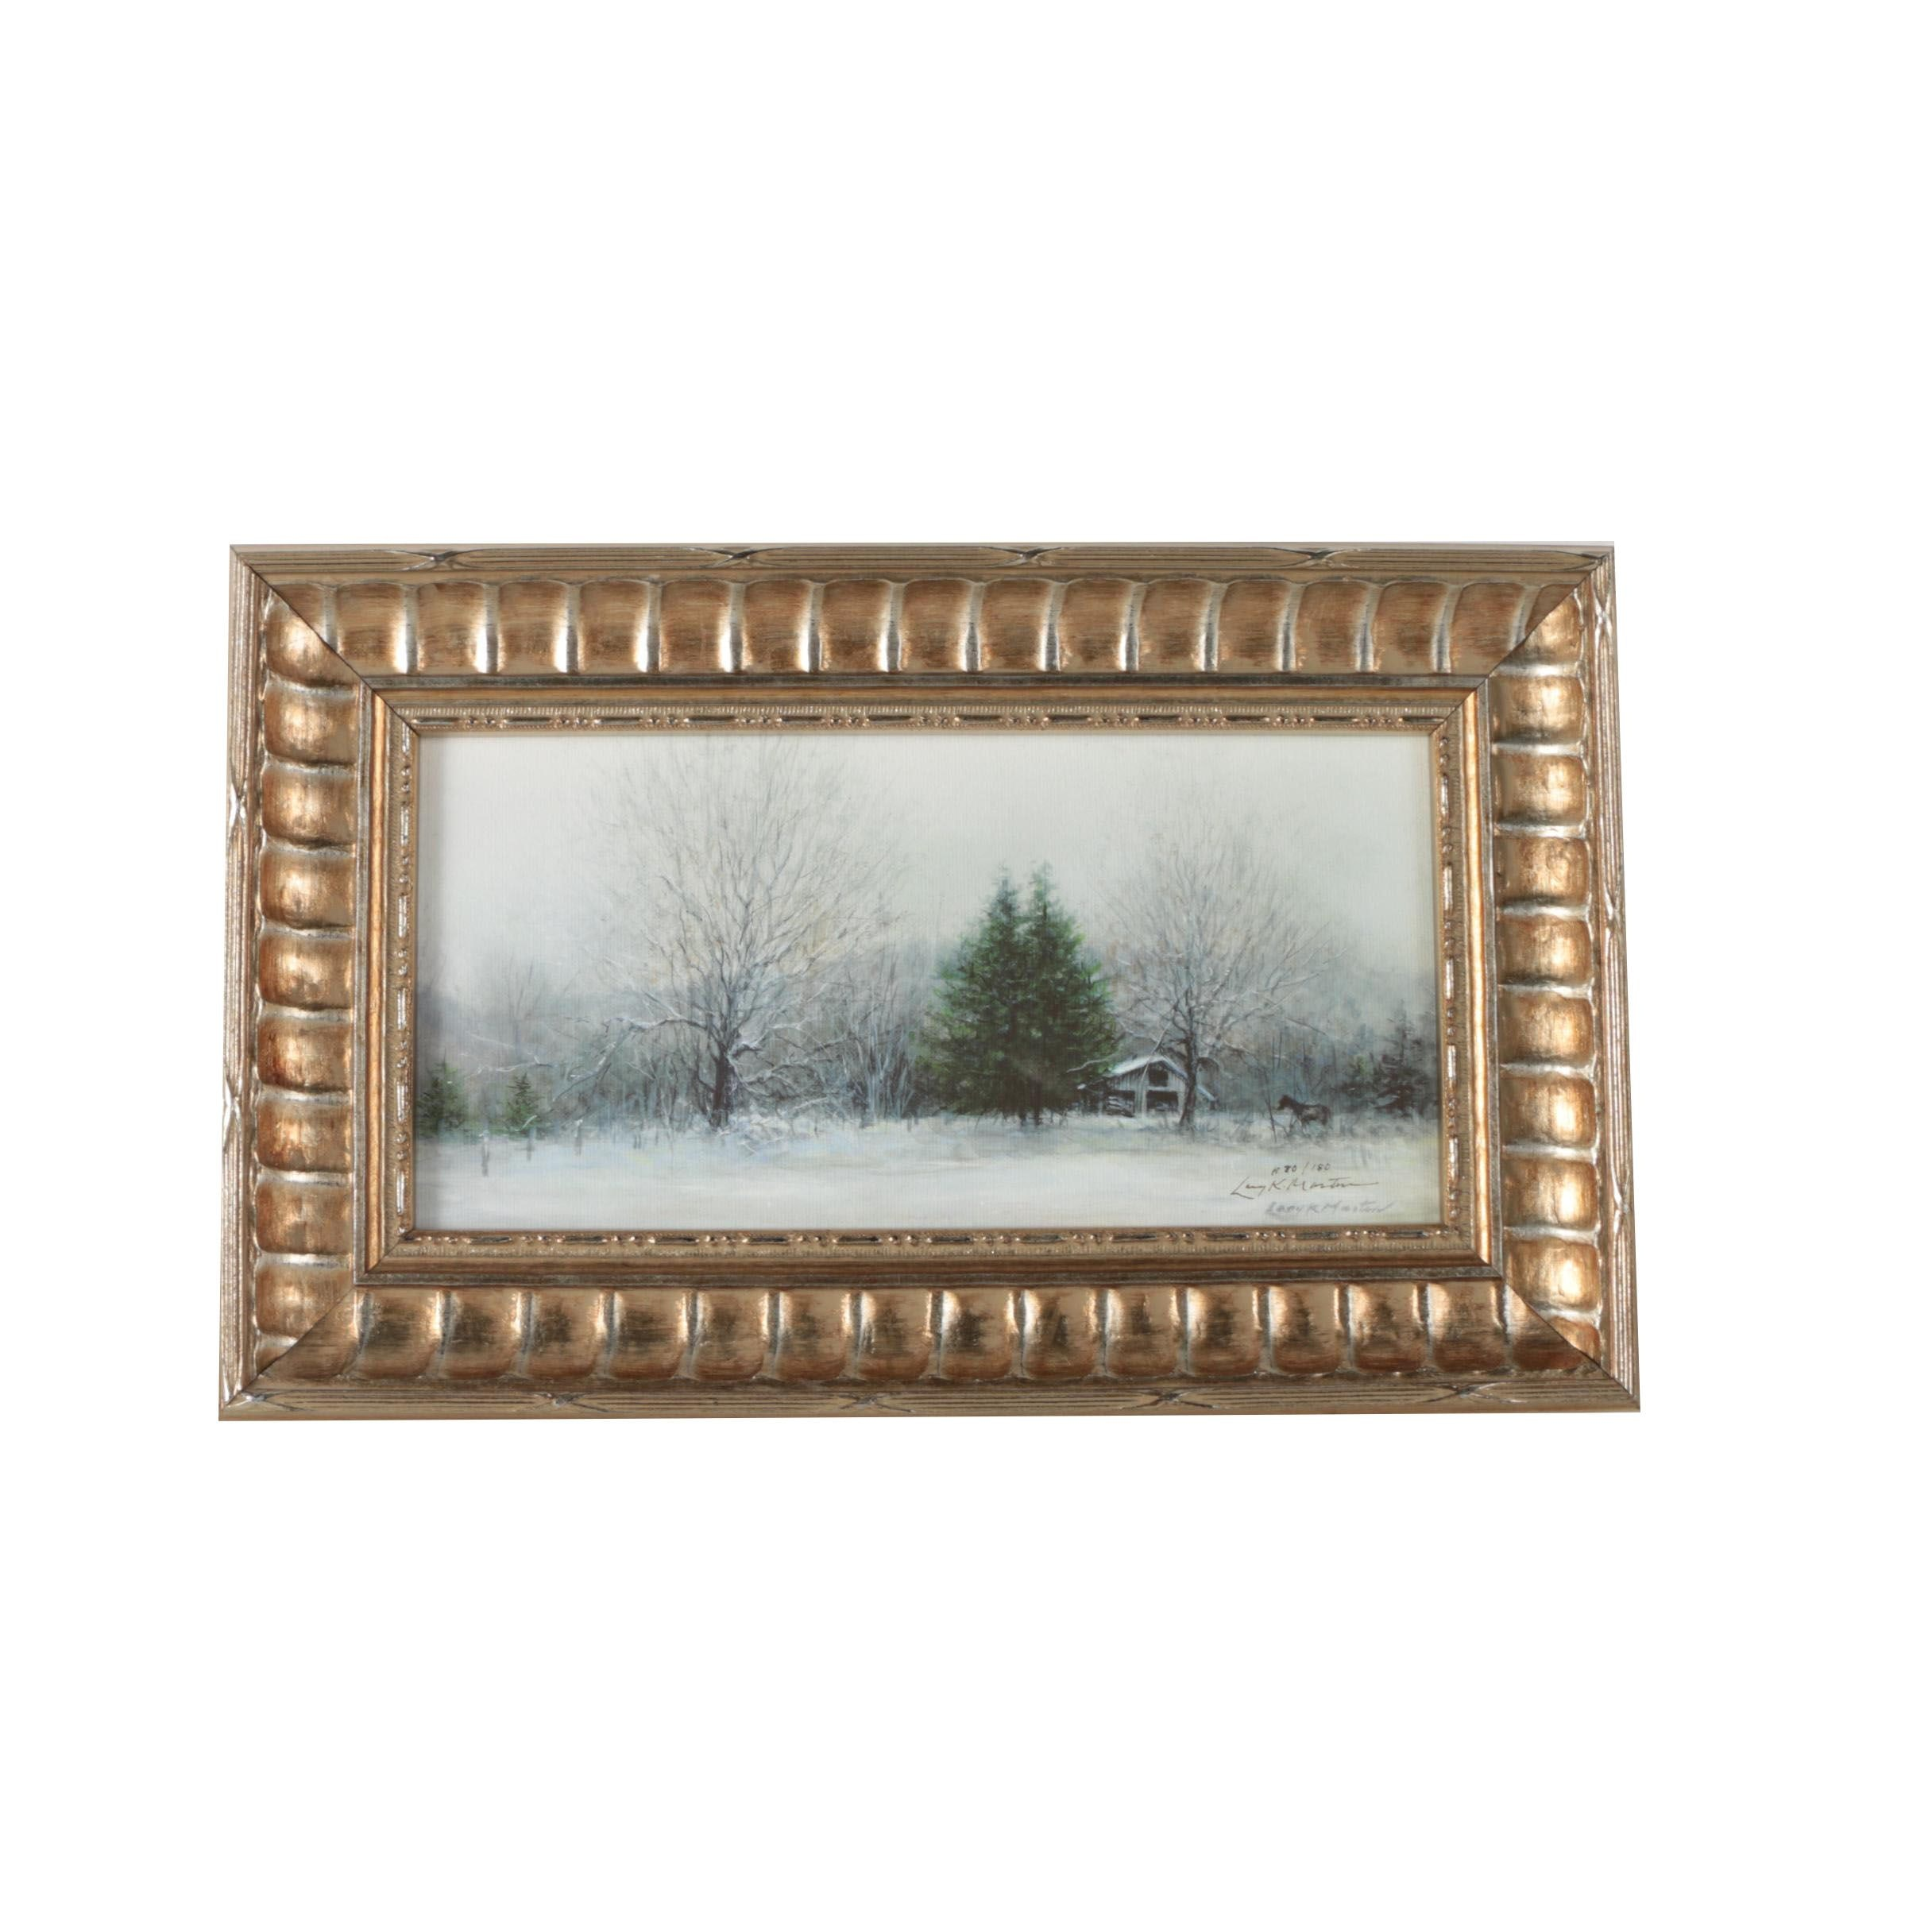 Larry K. Martin Limited Edition Giclee Print of Winter Scene